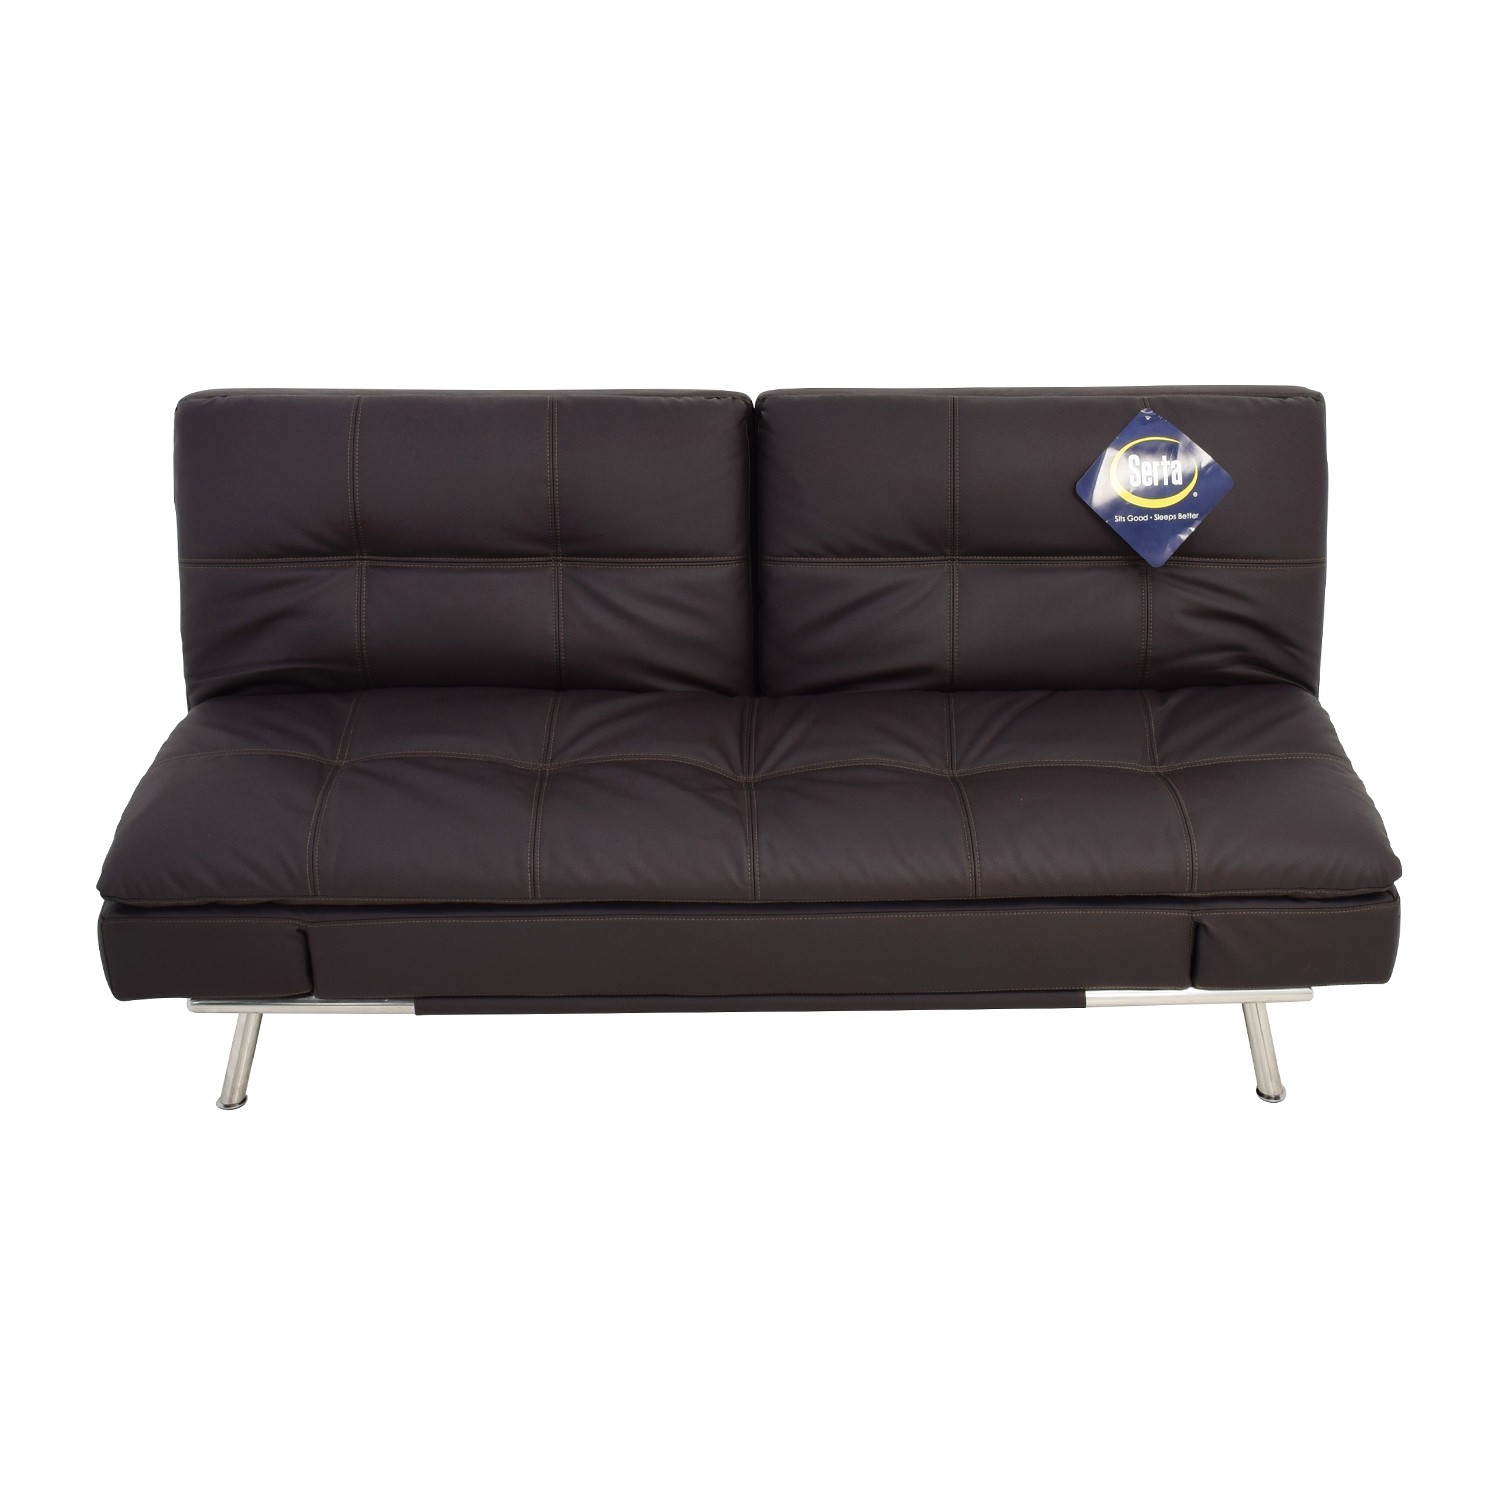 Lifestyle Solutions Serta Lifestyle Solutions Serta Matrix Leather Sleeper Sofa coupon